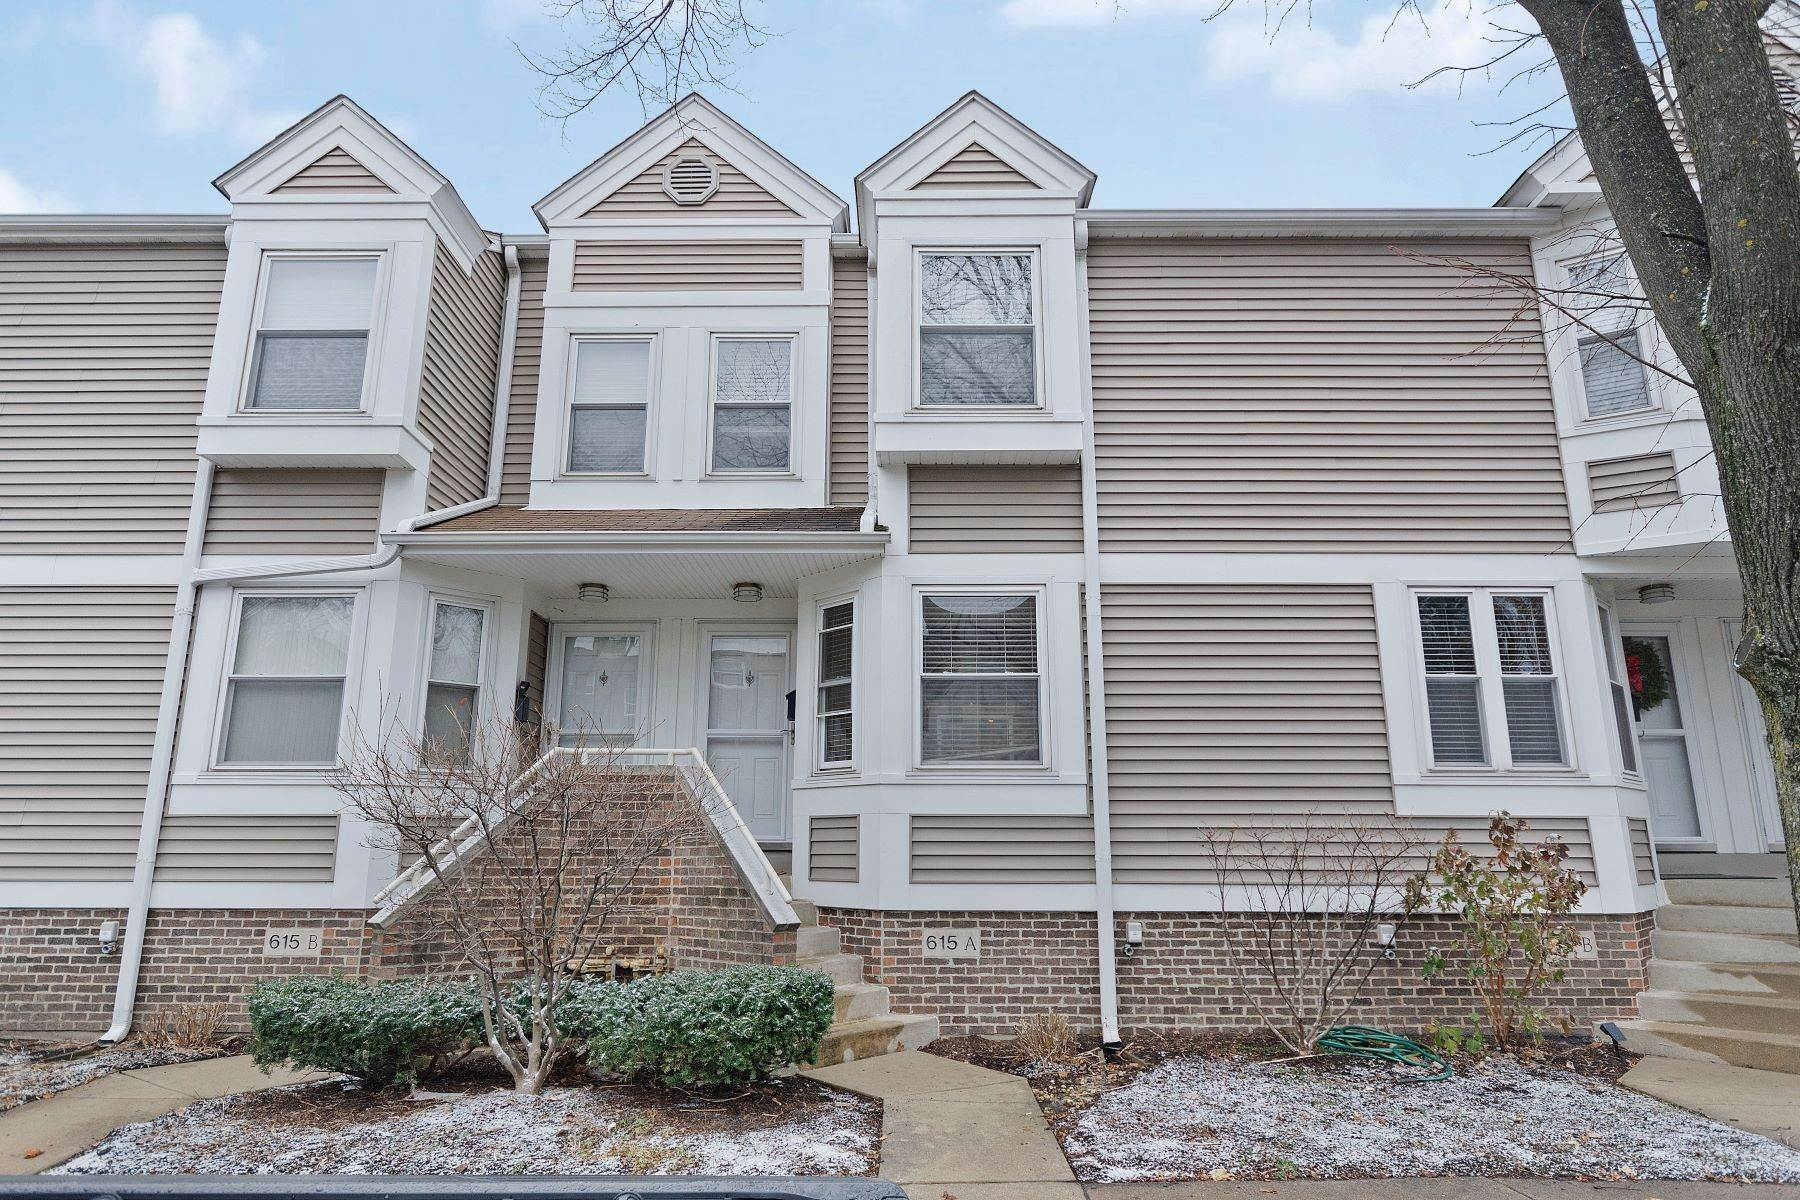 townhouses for Sale at Rarely Available Custer Row Townhome 615 Custer Avenue, Unit A Evanston, Illinois 60202 United States